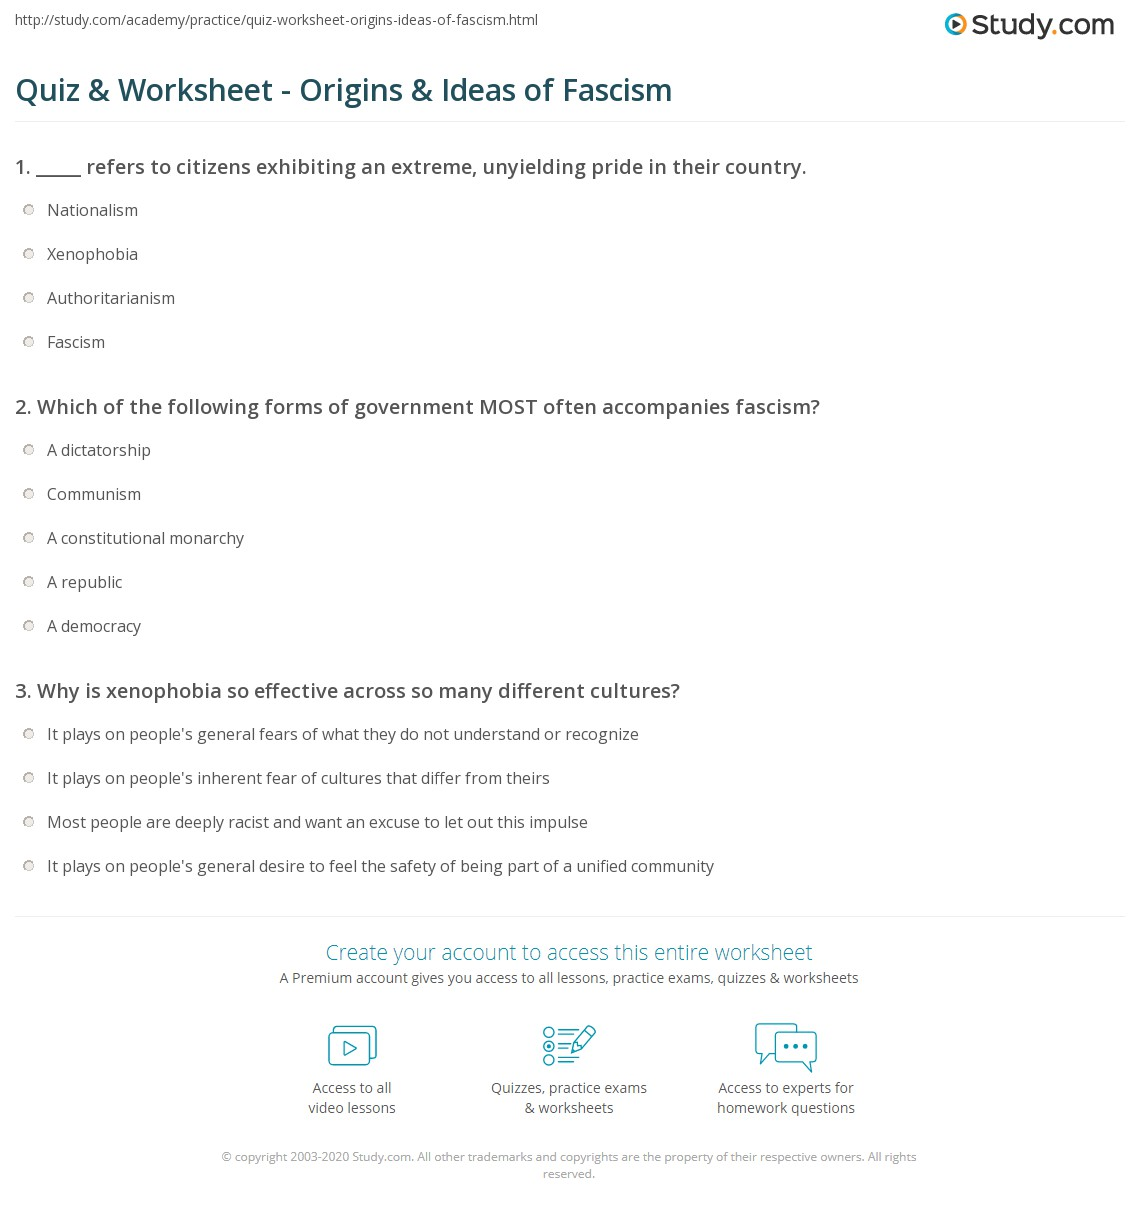 quiz worksheet origins ideas of fascism com print fascism characteristics history rise worksheet